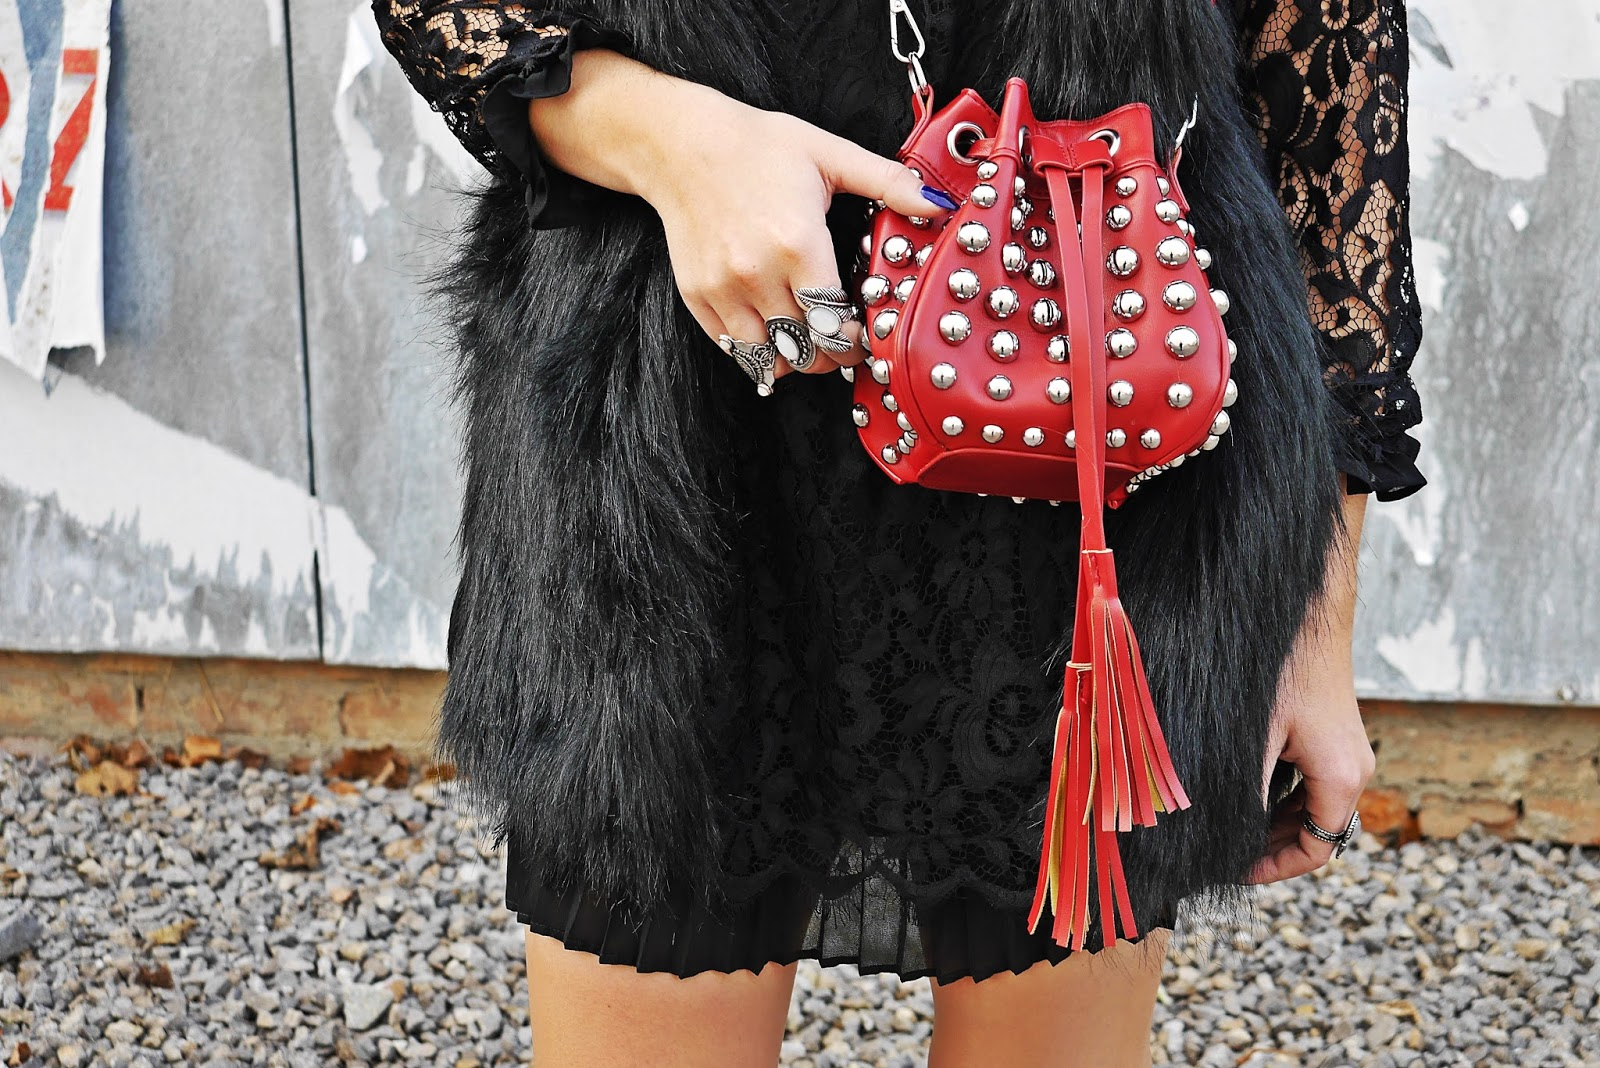 6_lace_black_dress_fur_vaist_red_bag_gamiss_karyn_blog_modowy_221117